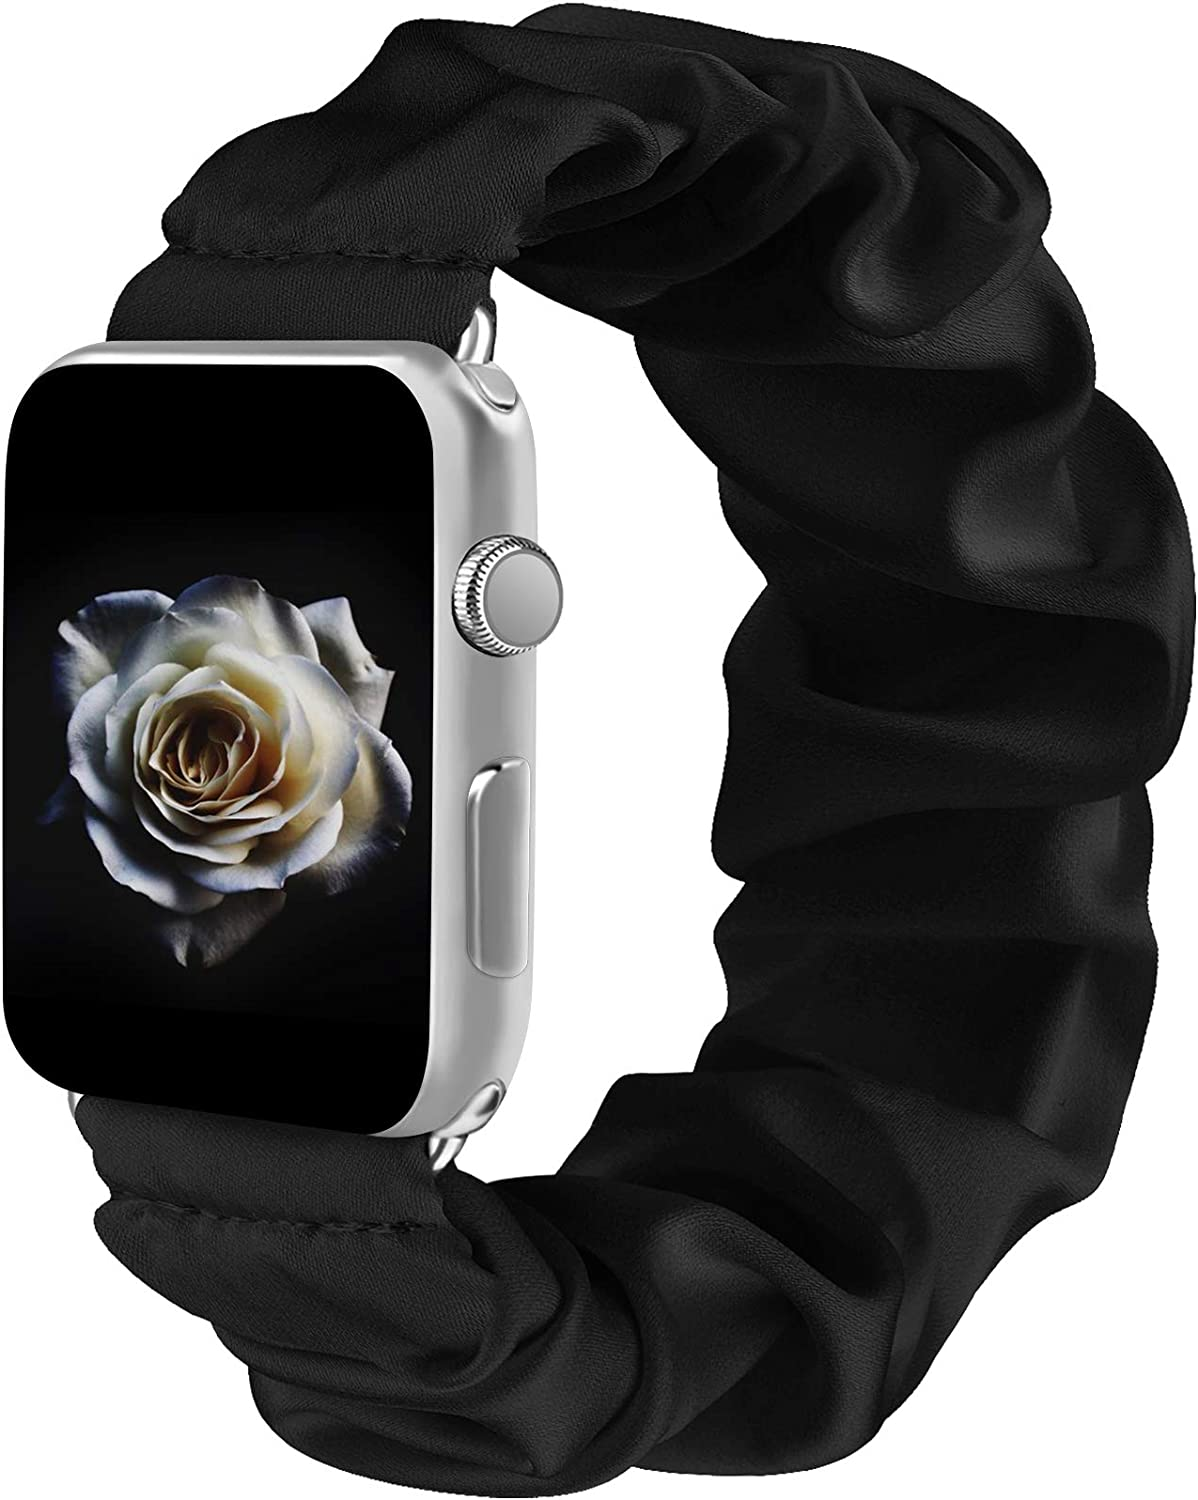 Amzpas Scrunchie Elastic Bands Compatible for Apple Watch Band 38mm 42mm Women Girl Cloth Rubber Band Bracelet for iwatch Series SE 6 5 4 3 2 1 (Black, 38mm/40mm-M/L)